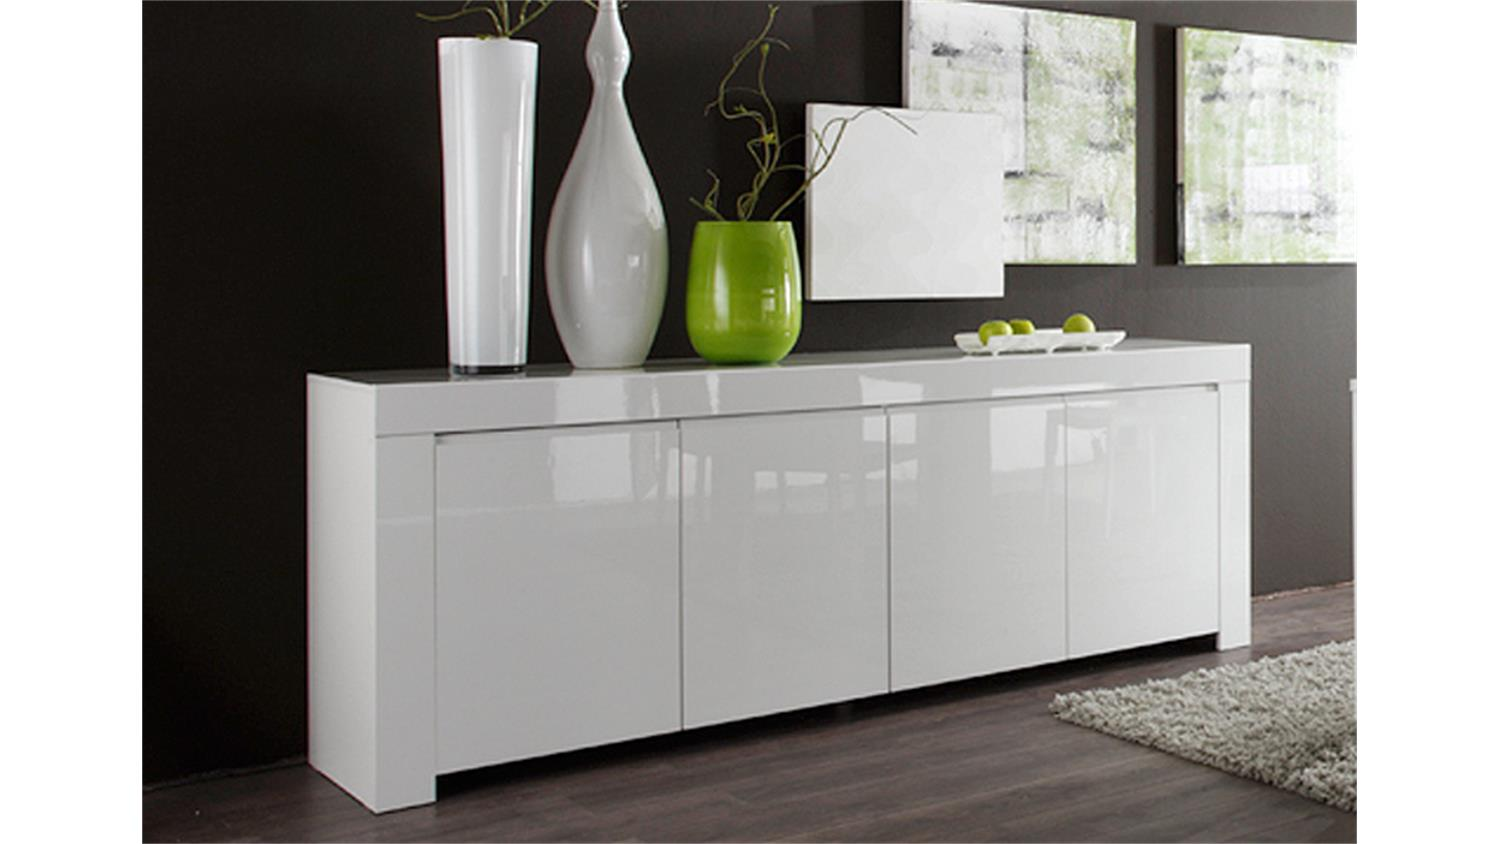 sideboard amalfi in wei echt hochglanz lackiert 210 cm breit. Black Bedroom Furniture Sets. Home Design Ideas